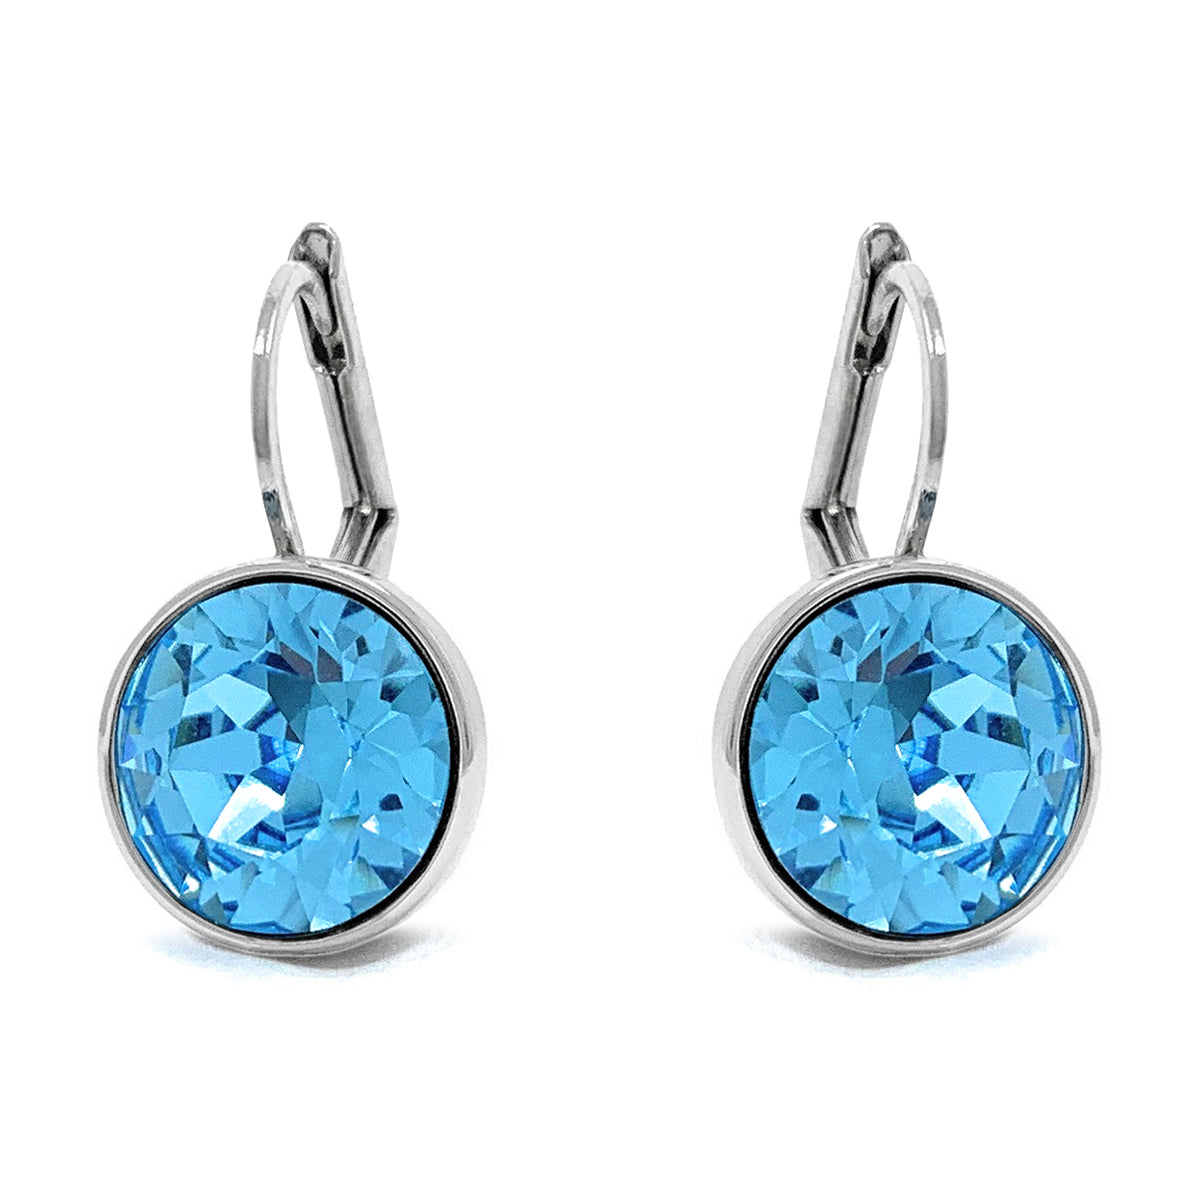 Drop Earrings with Blue Aquamarine Crystals Rhodium Plated